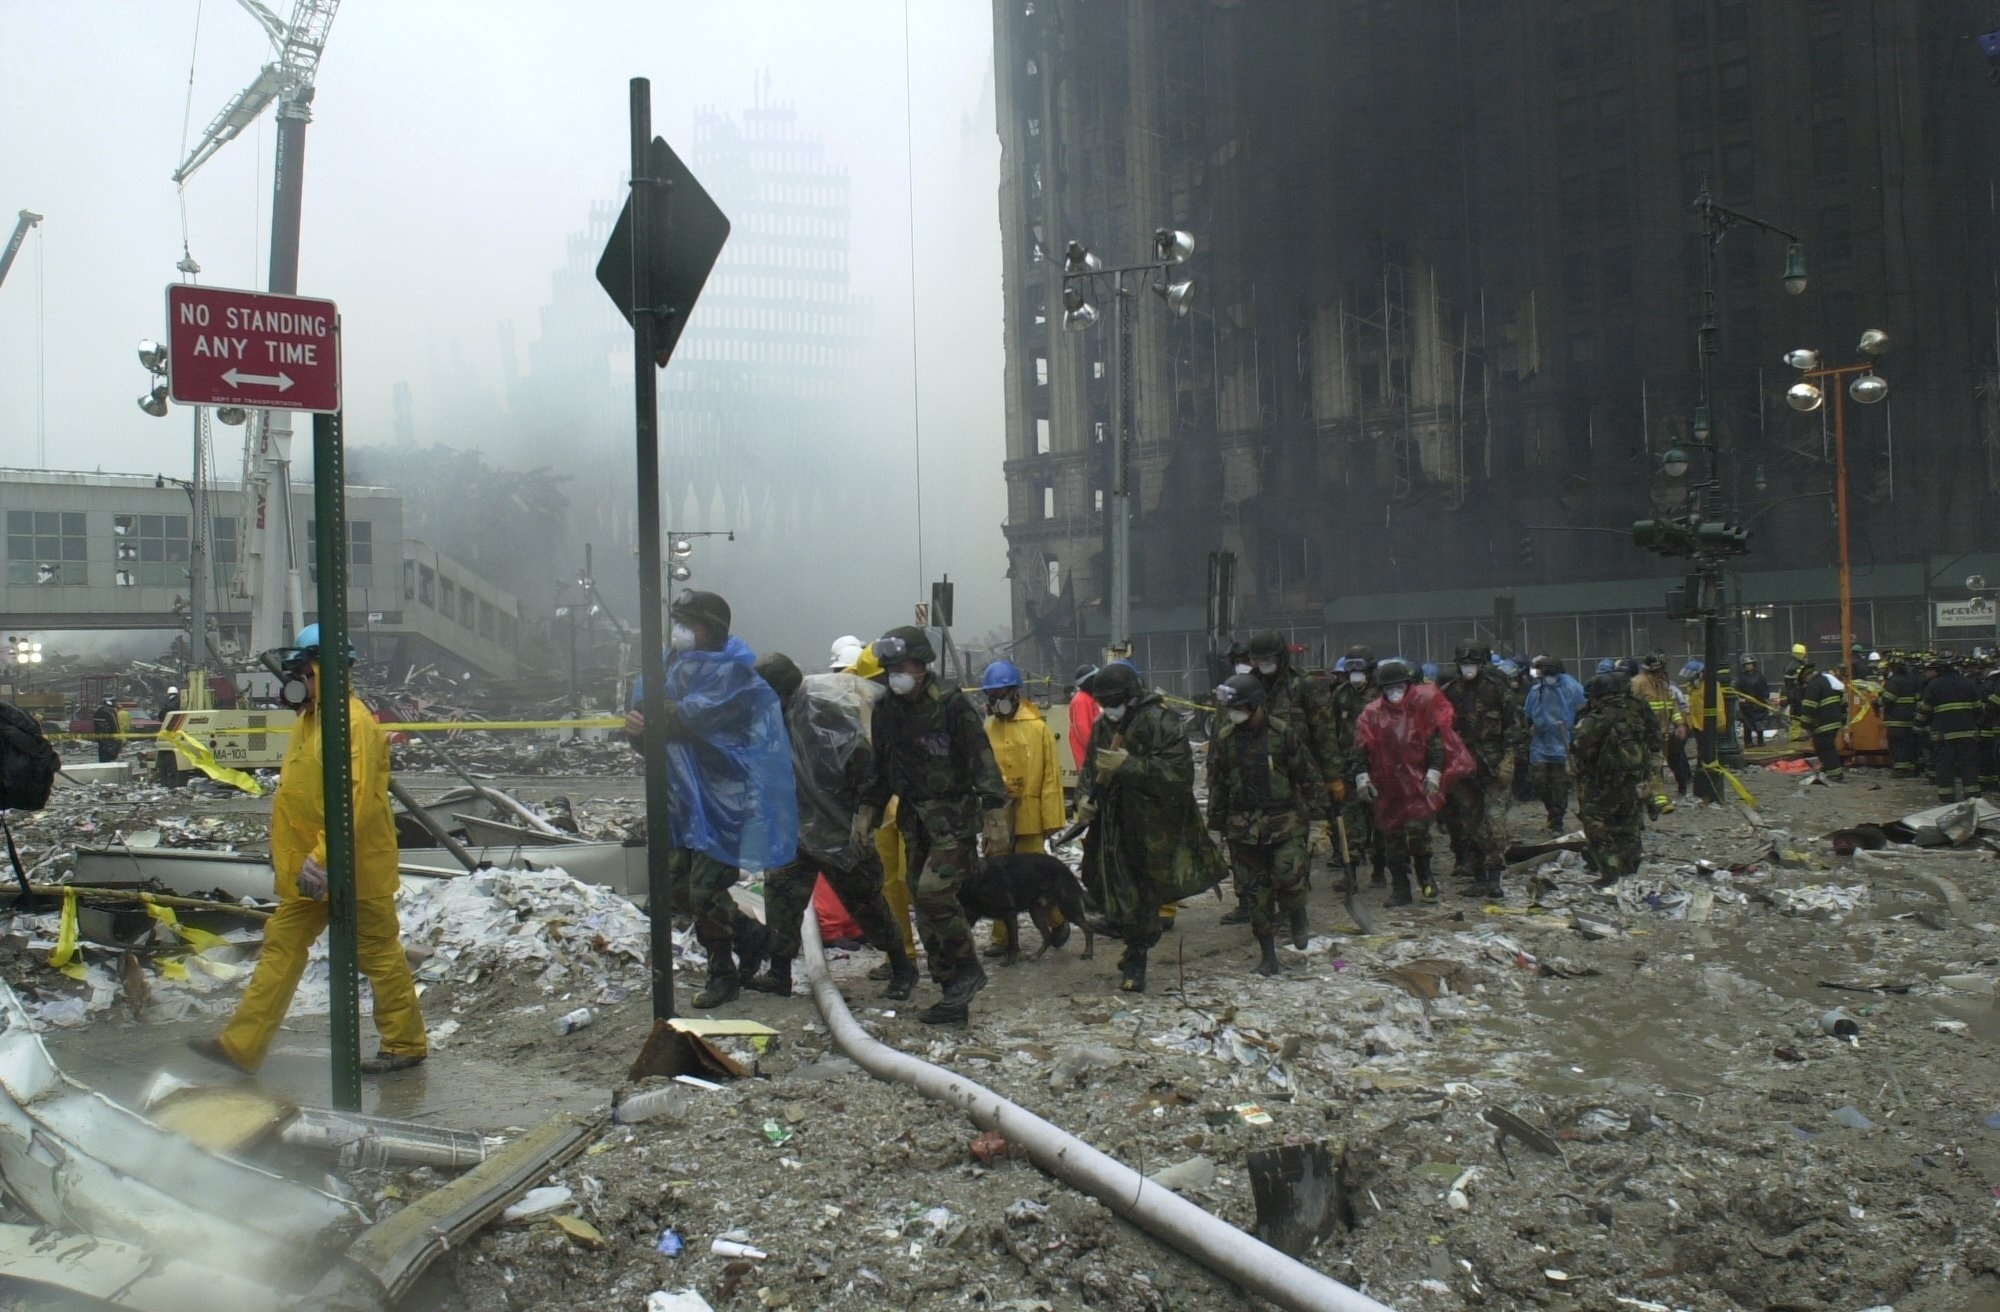 Photos: A portrait of the 9/11 rescue workers - AOL.com